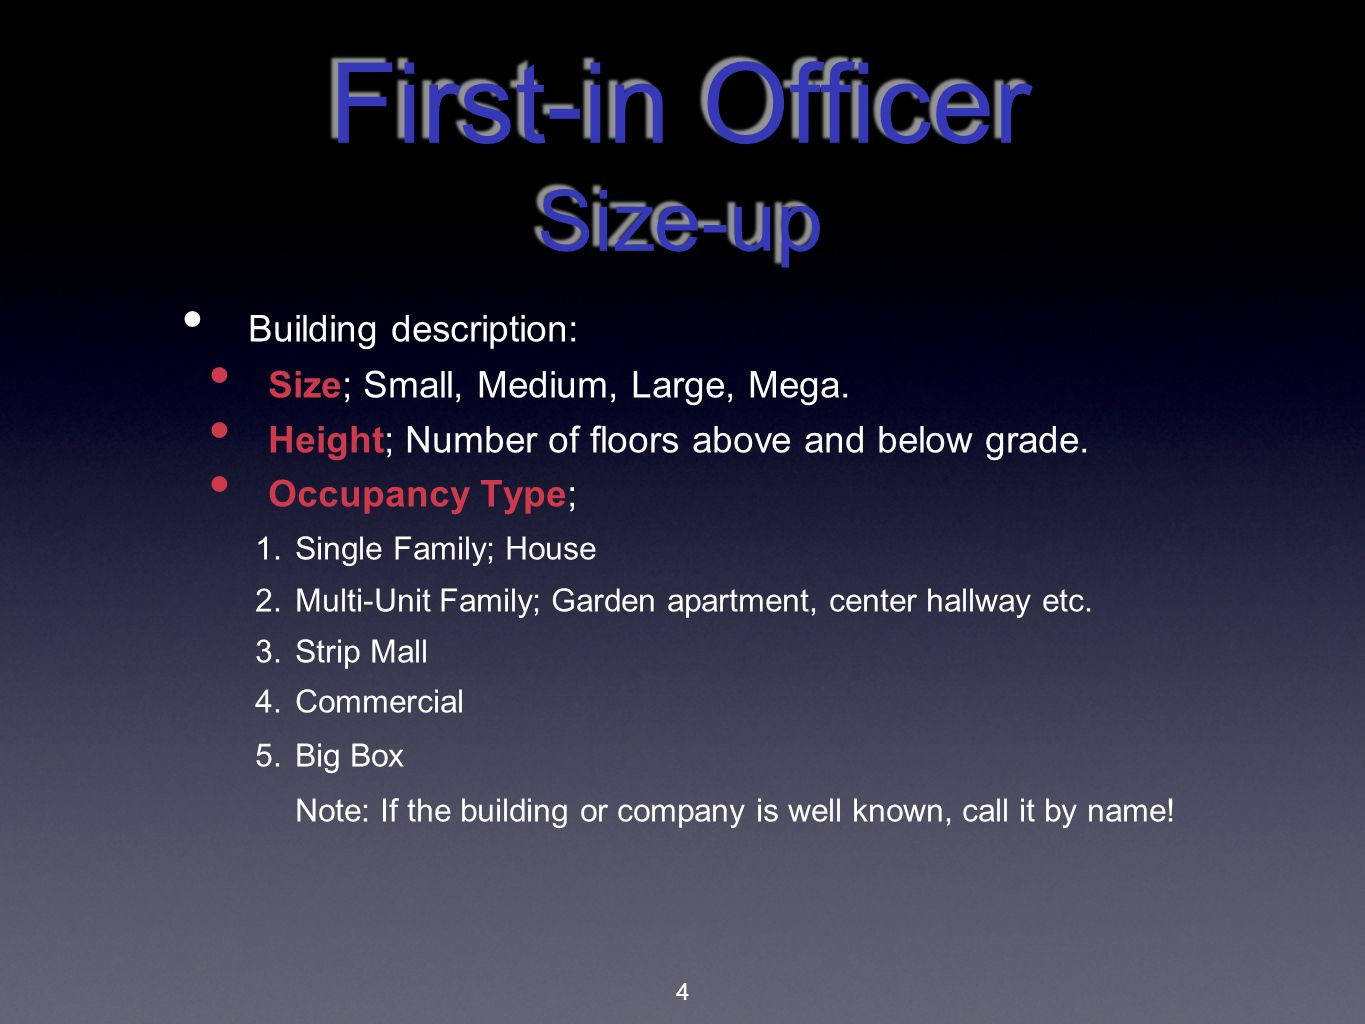 First-in Officer Size-up